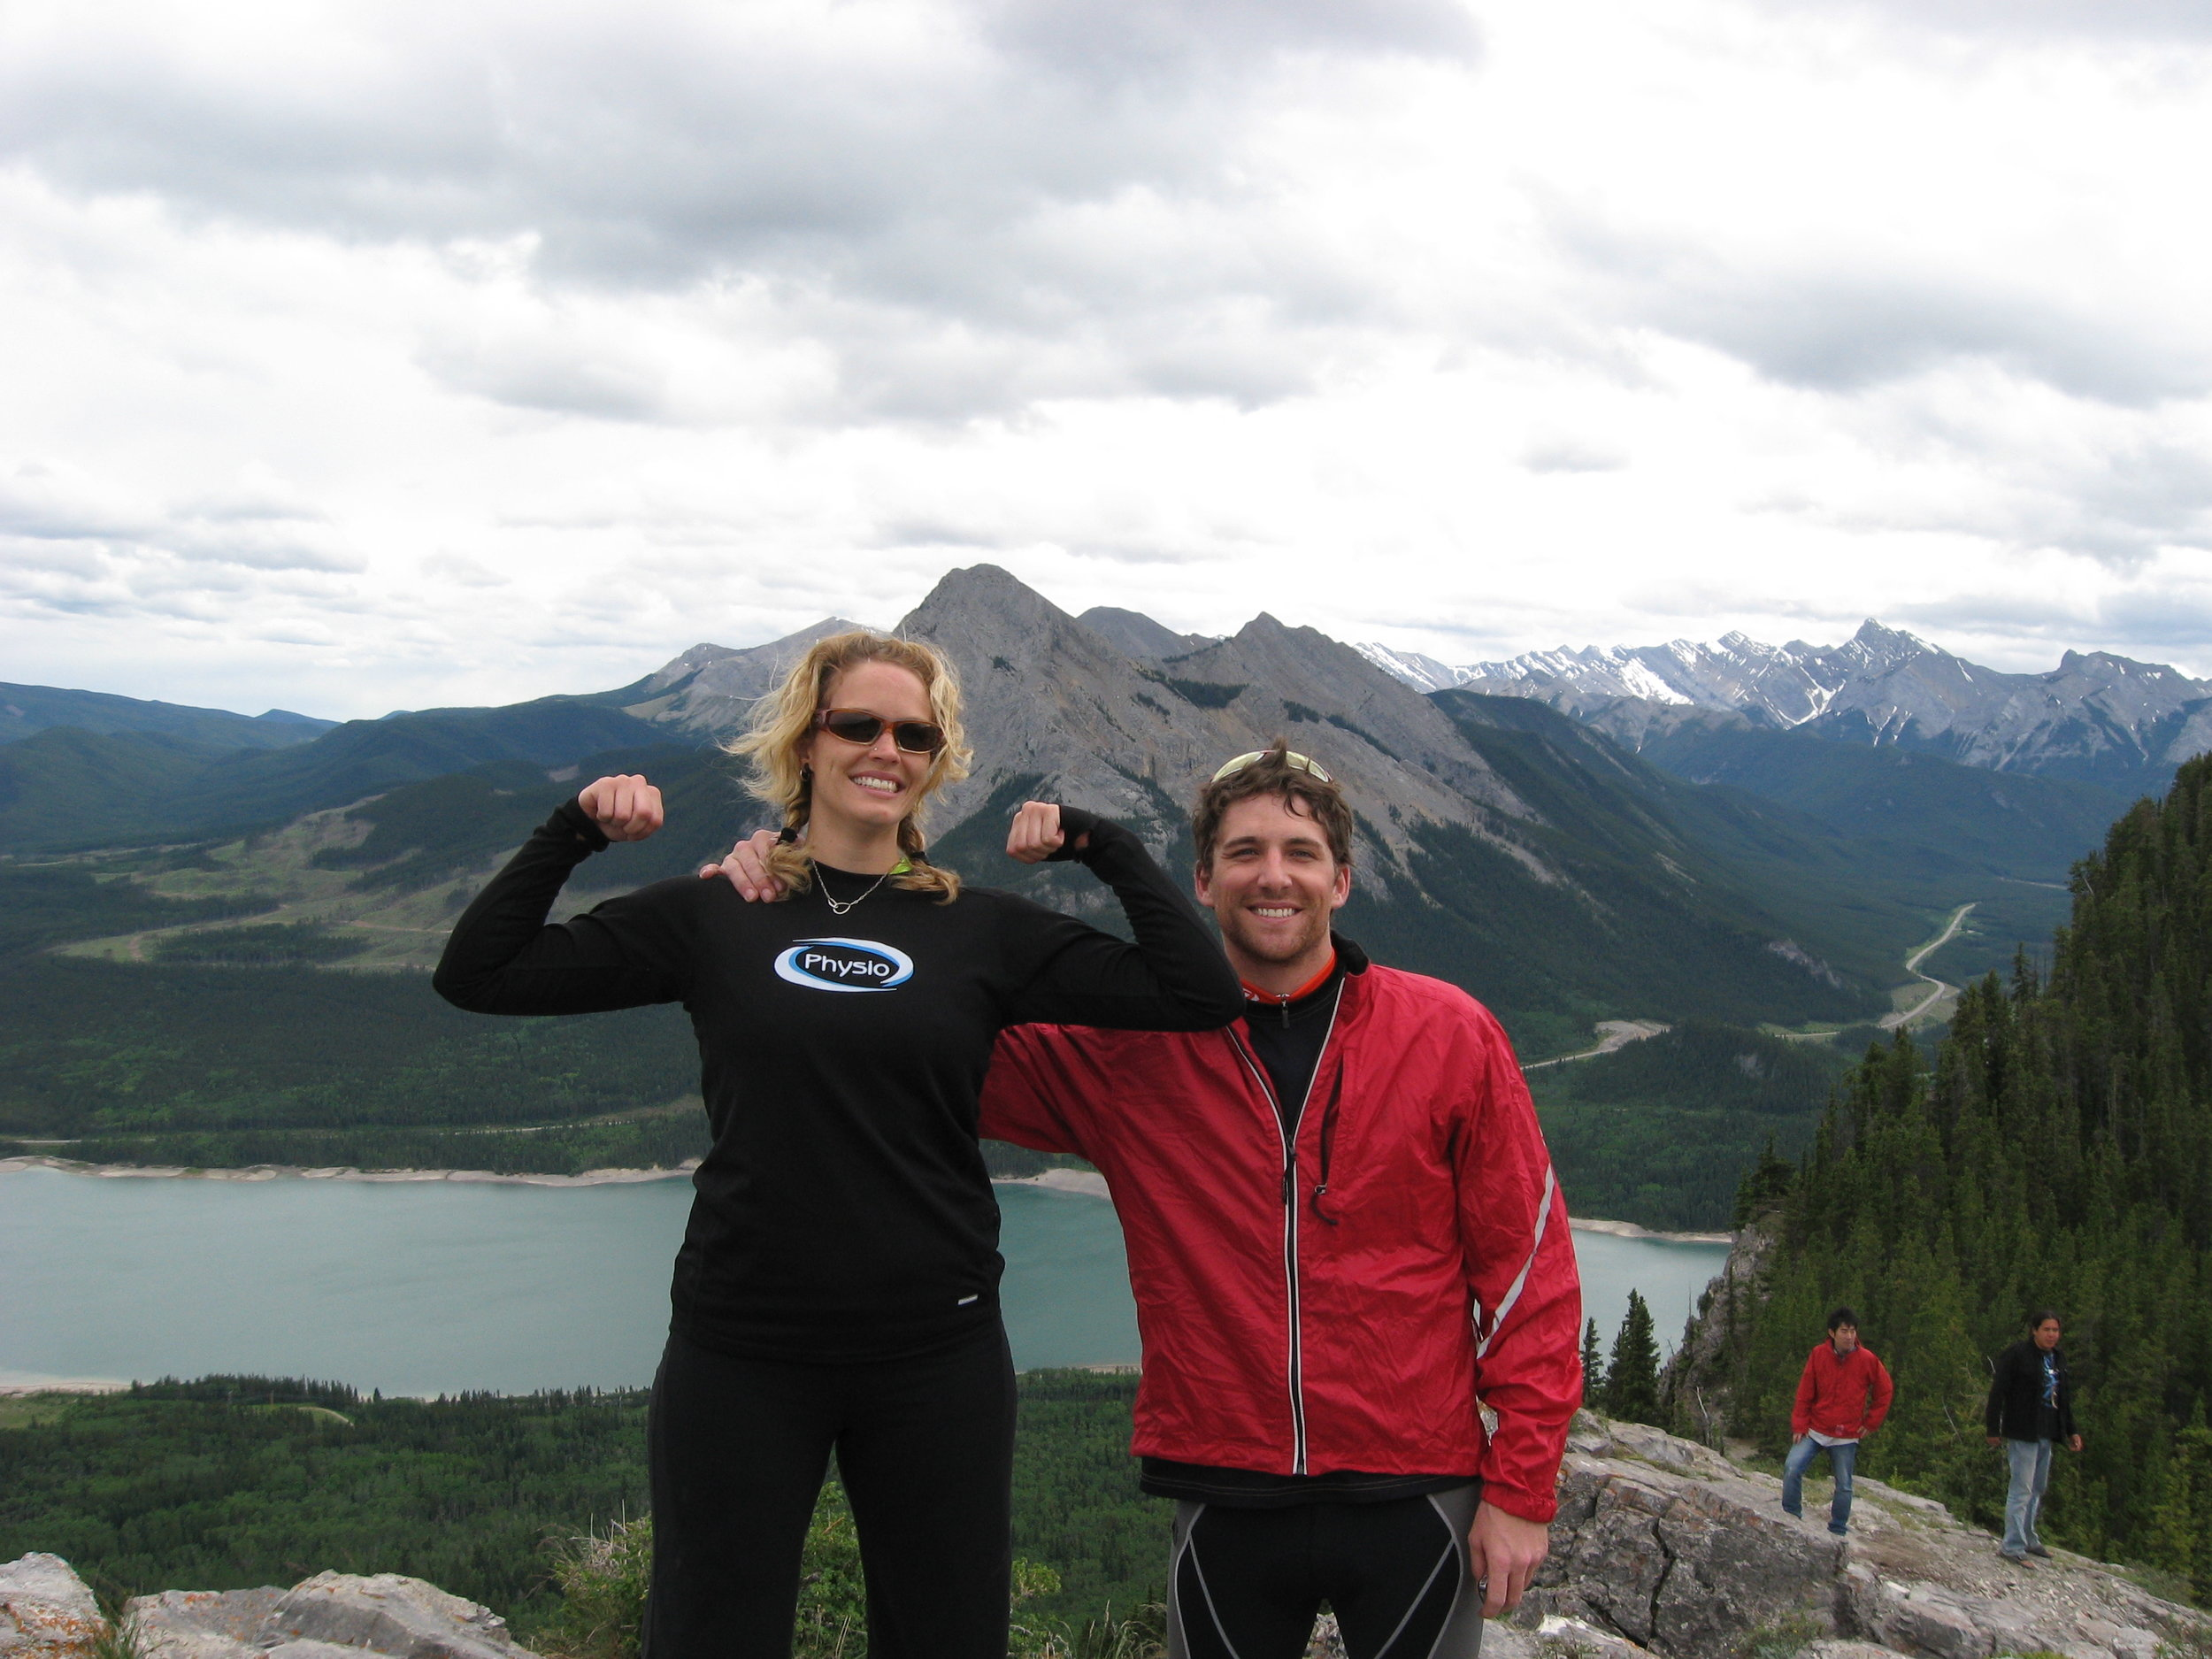 My brother and I top of a ride in Canmore. The only ride we have completed together so far.